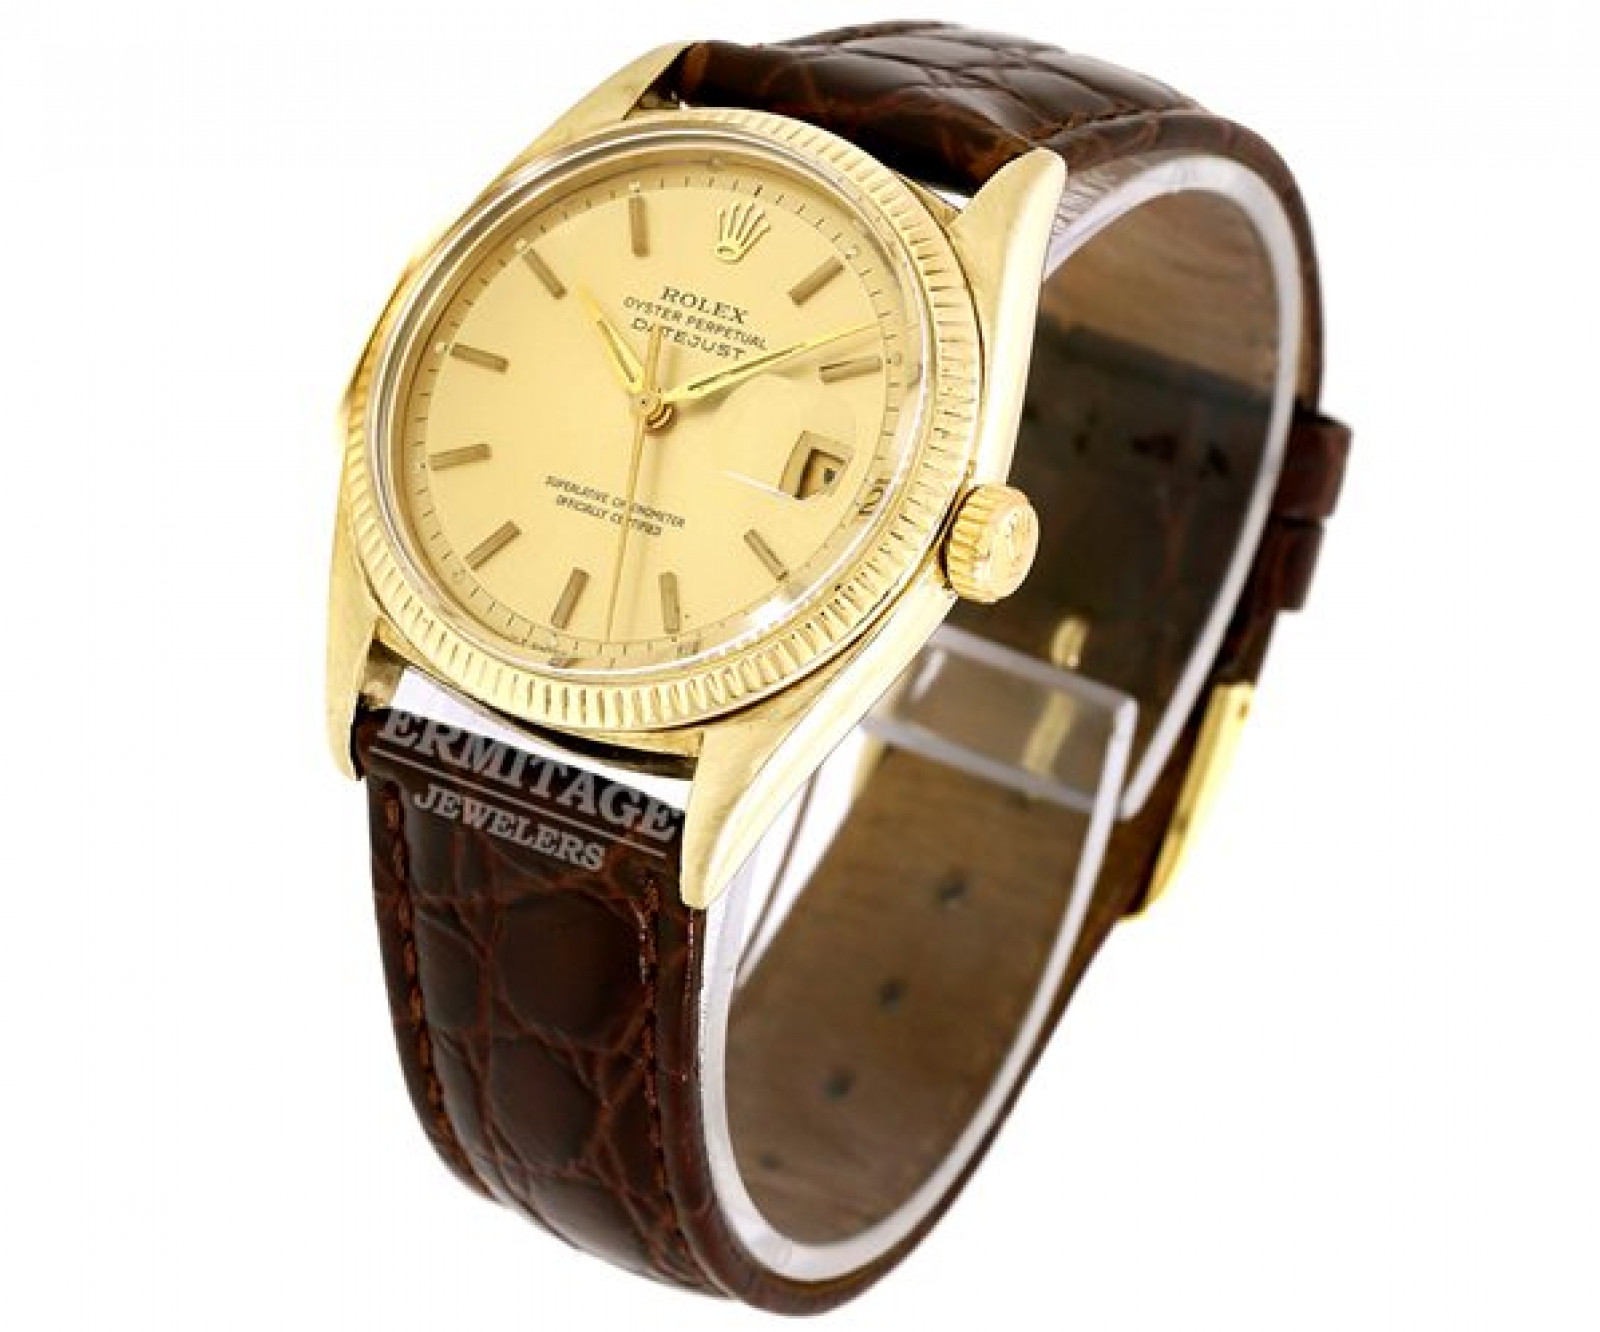 Vintage Rolex Oyster Perpetual Datejust 6605 Gold